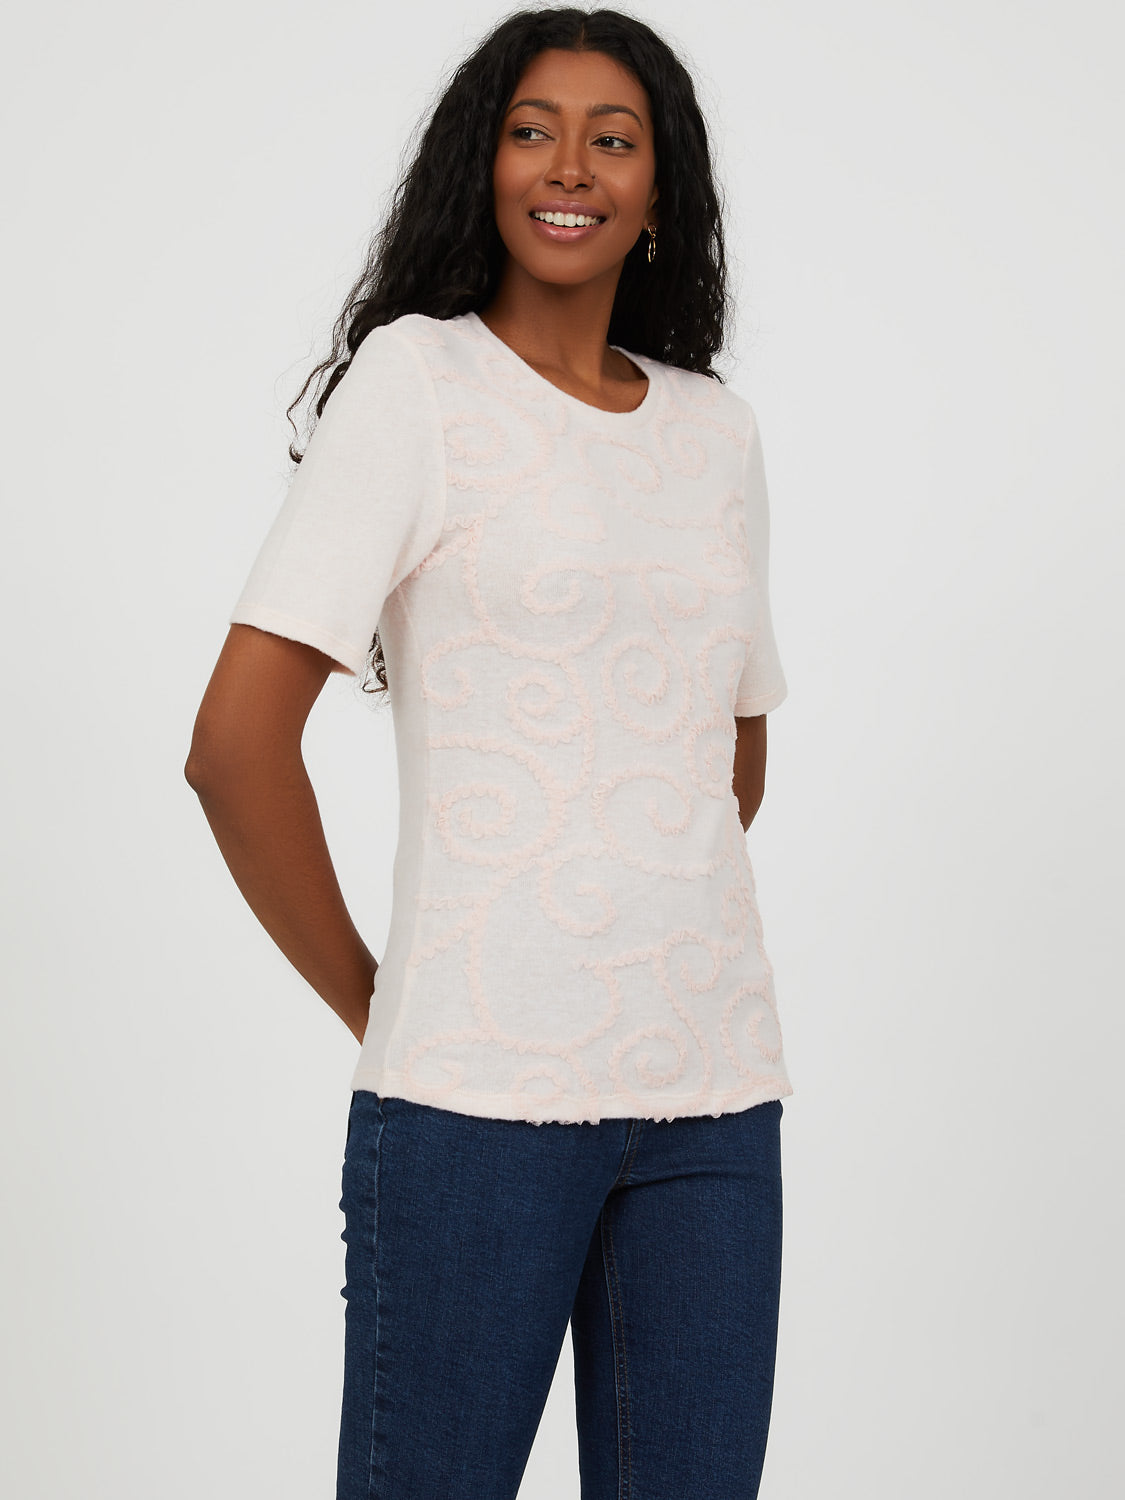 Short Sleeve Embroidered Knit Top